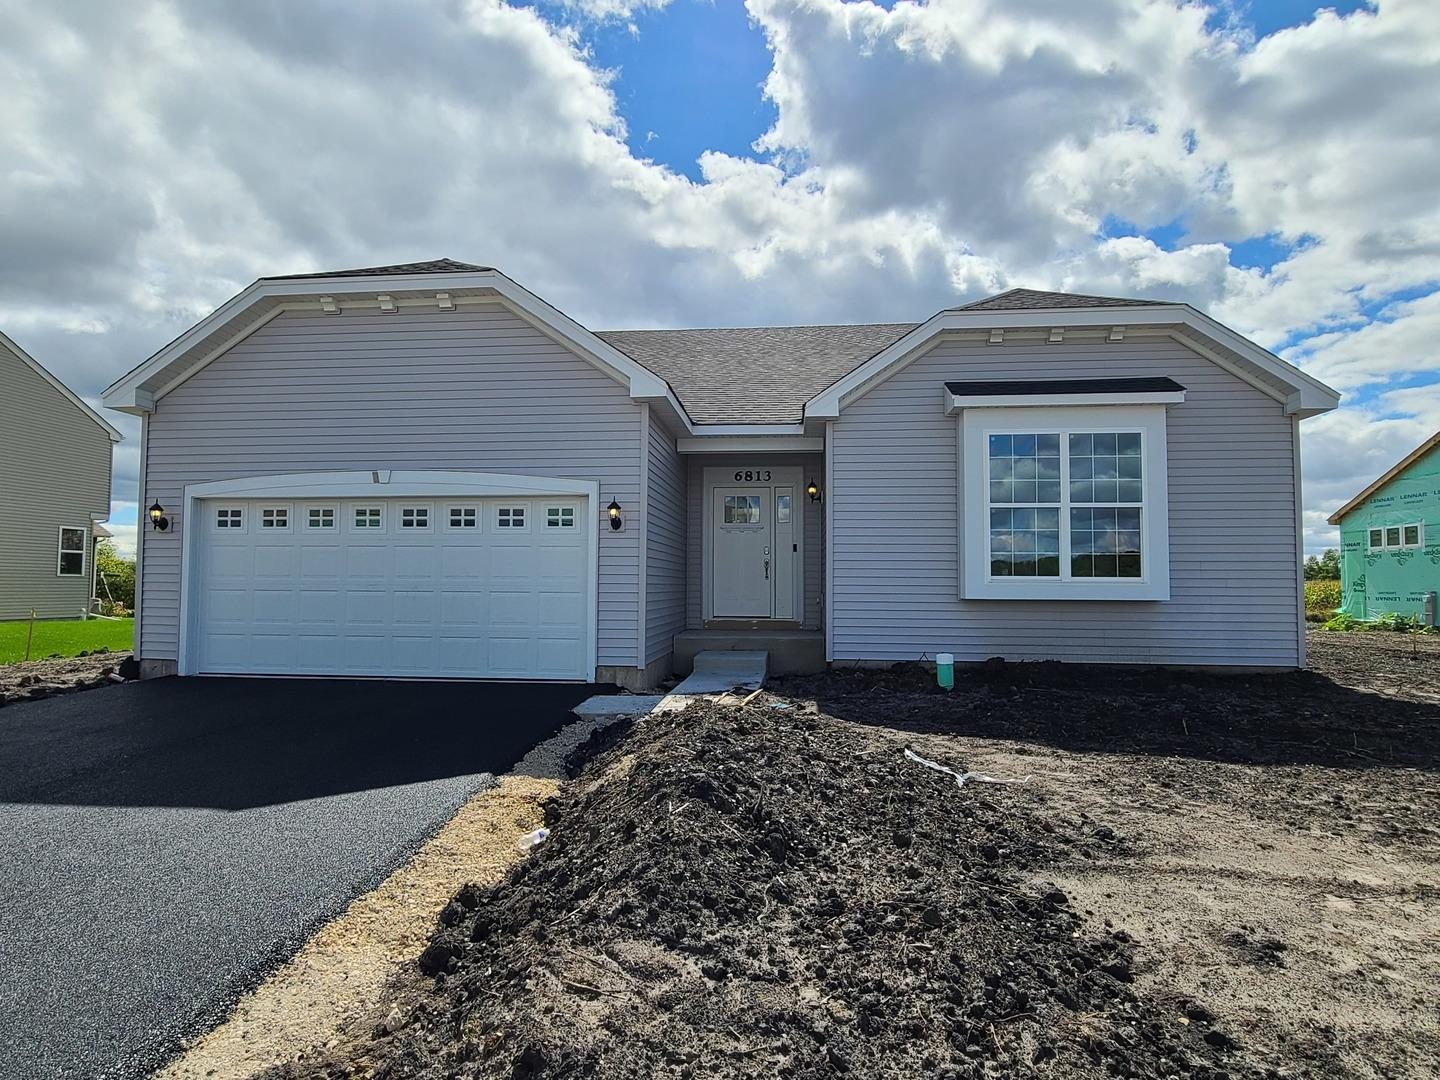 6813 Galway Drive, McHenry, IL 60050 - #: 10801064